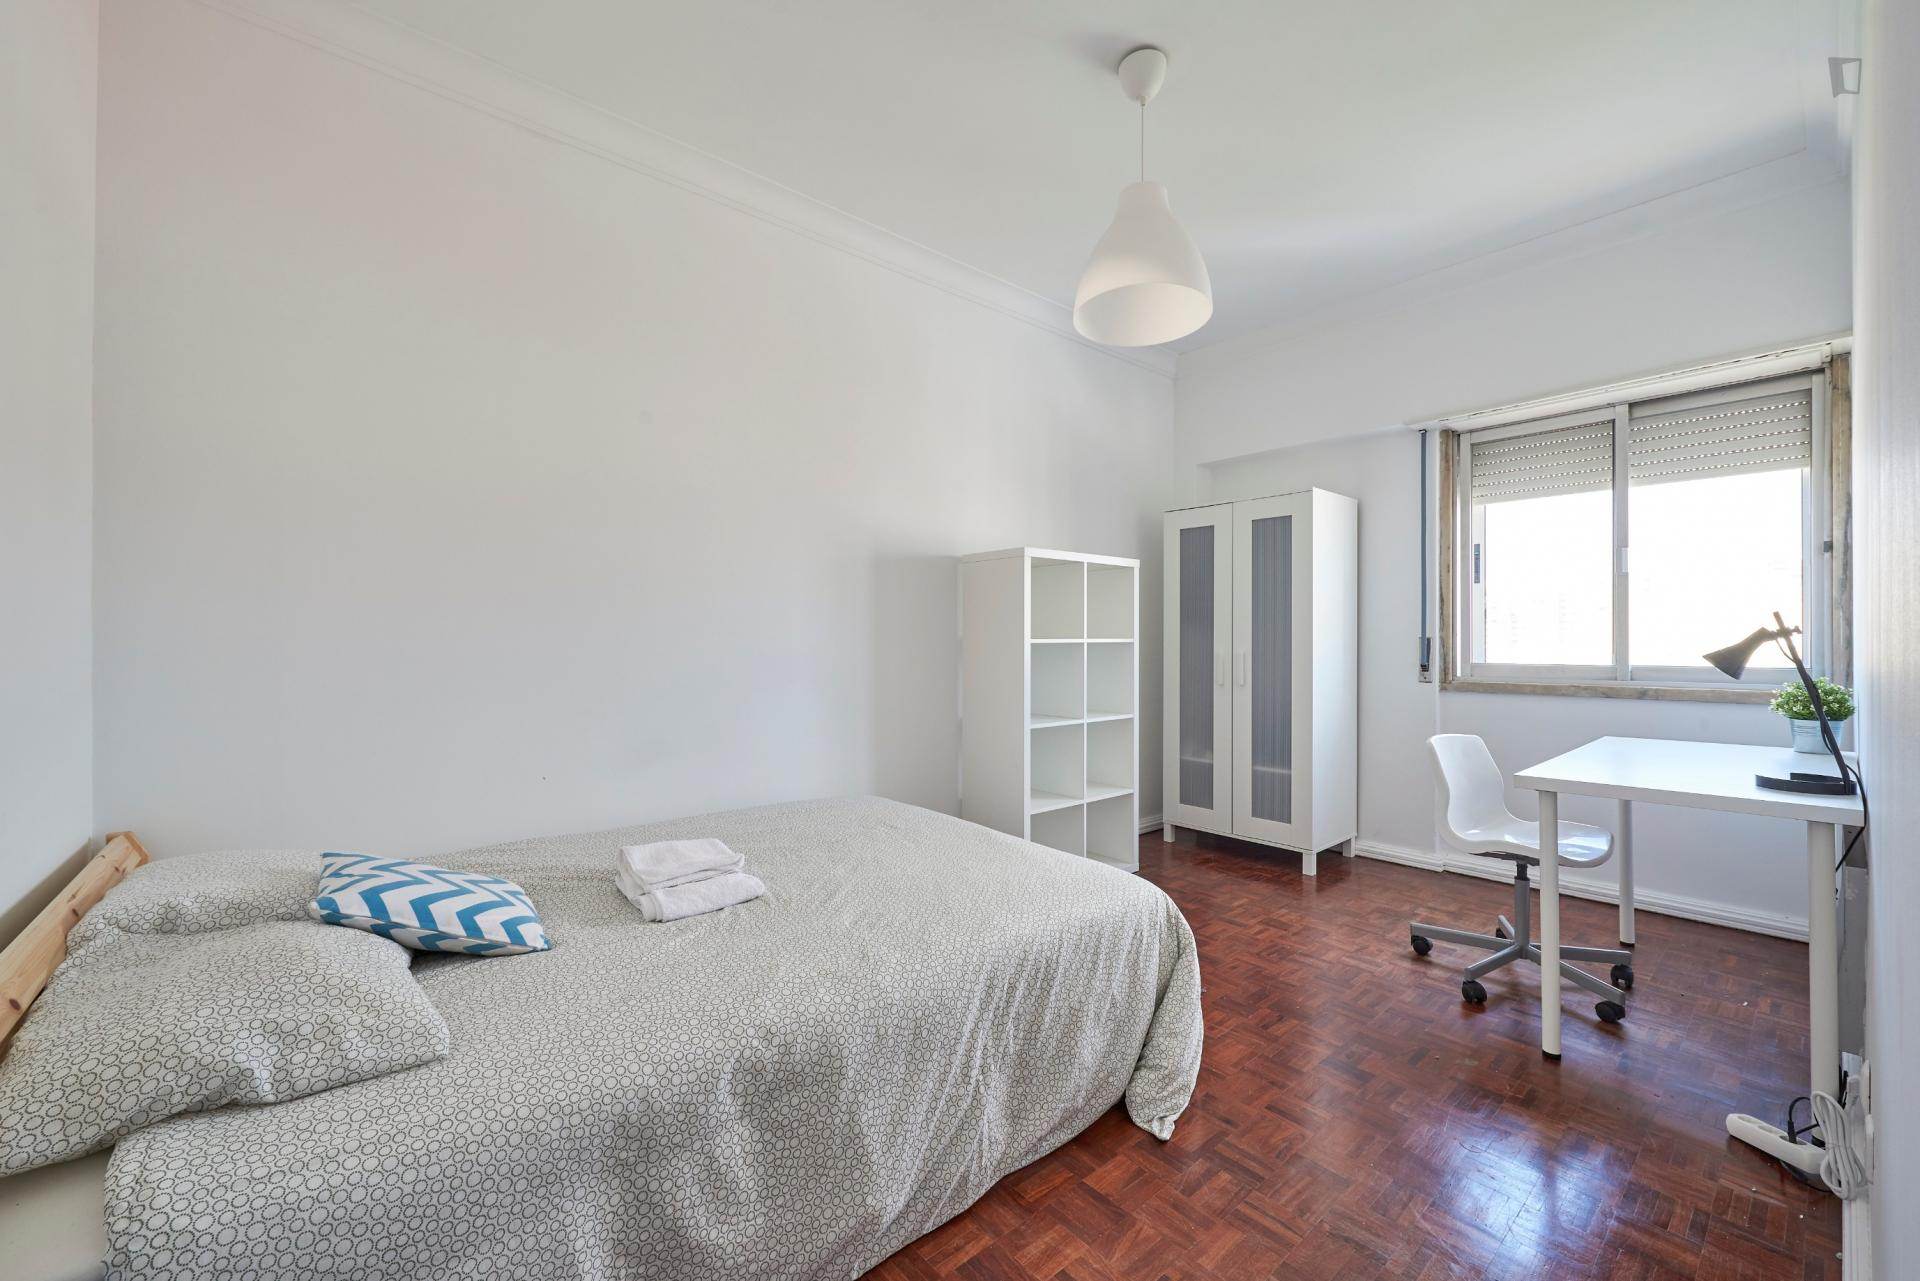 Almoster- Beautiful room in shared flat in Lisbon